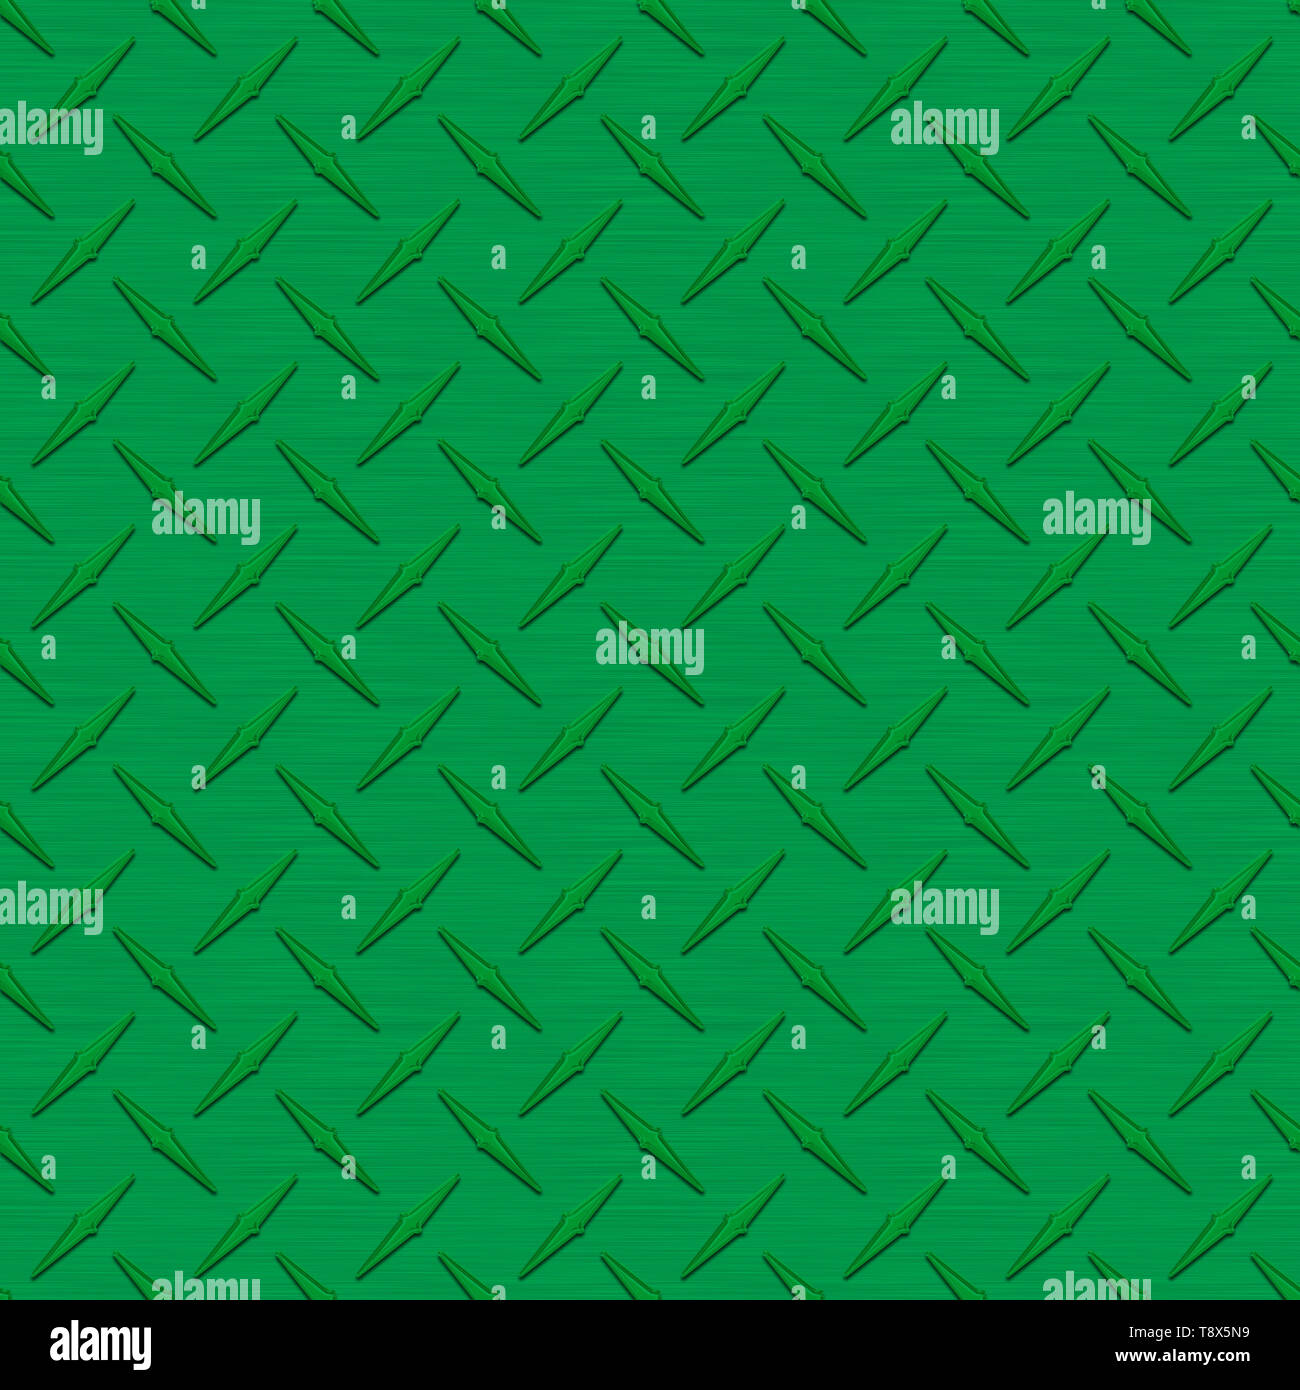 Dark Green Diamond Plate Metal Seamless Texture Tile - Stock Image